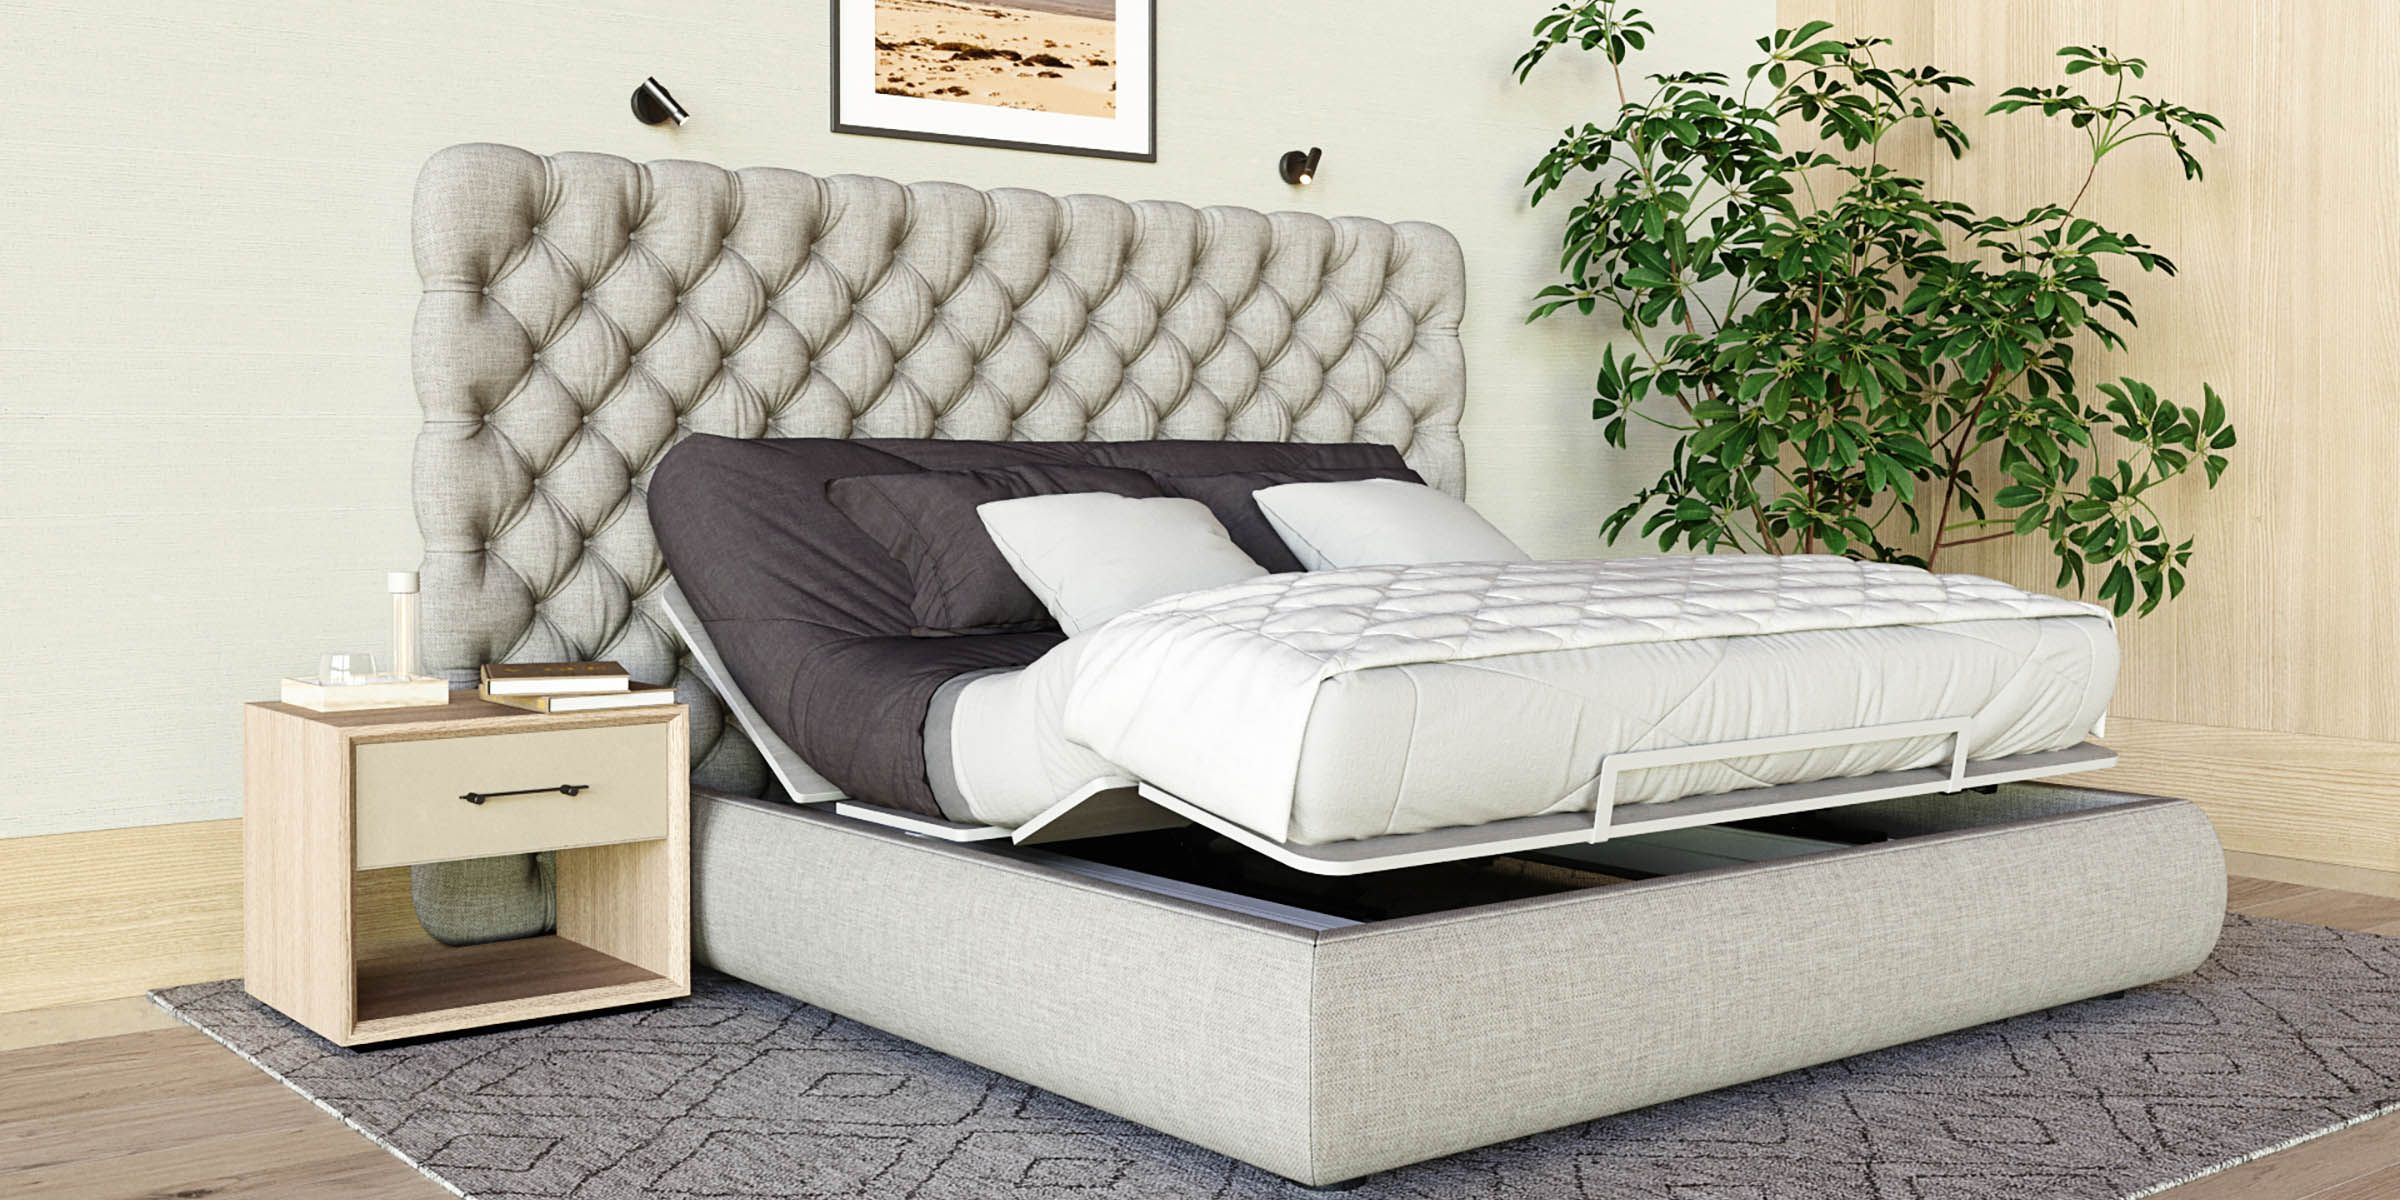 How To Choose A Headboard For Adjustable Bed Set It Up In 2020